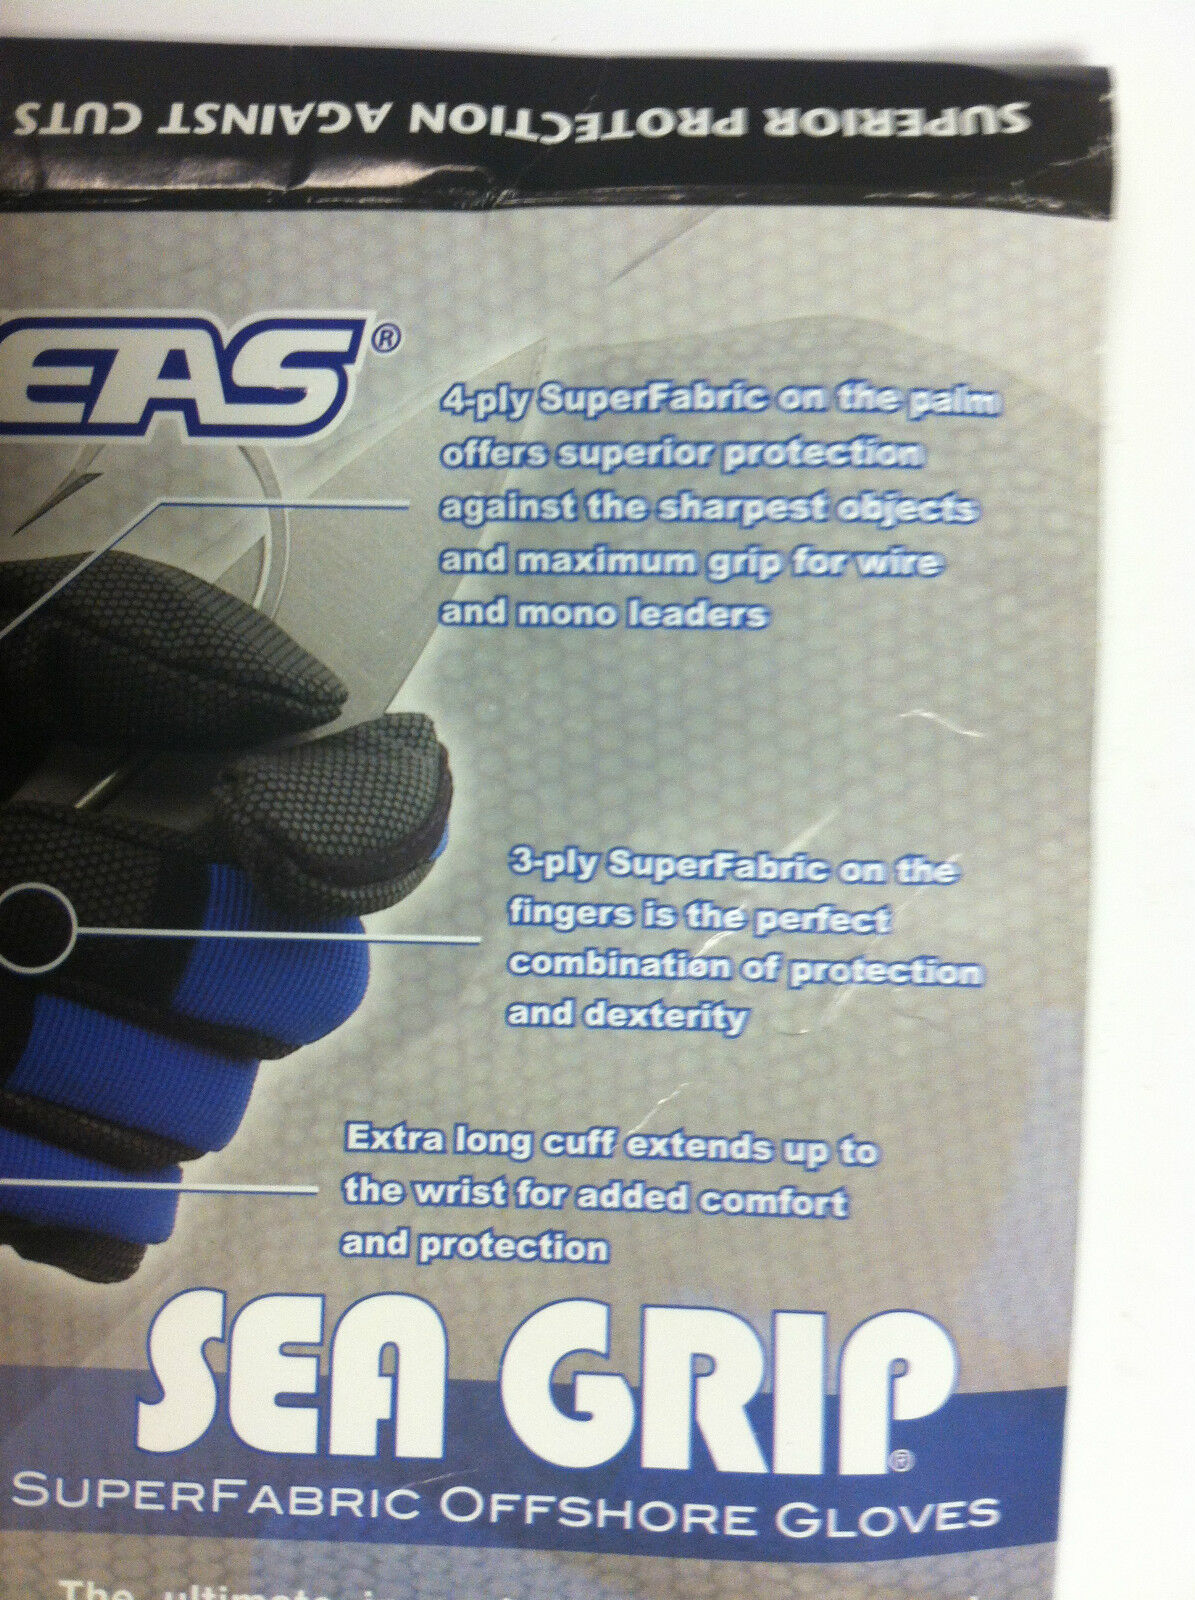 AFW SEA GRIP SUPER FABRIC OFFSHORE OFFSHORE OFFSHORE GLOVES - Blau - ULTIMATE PROTECTION 586da2